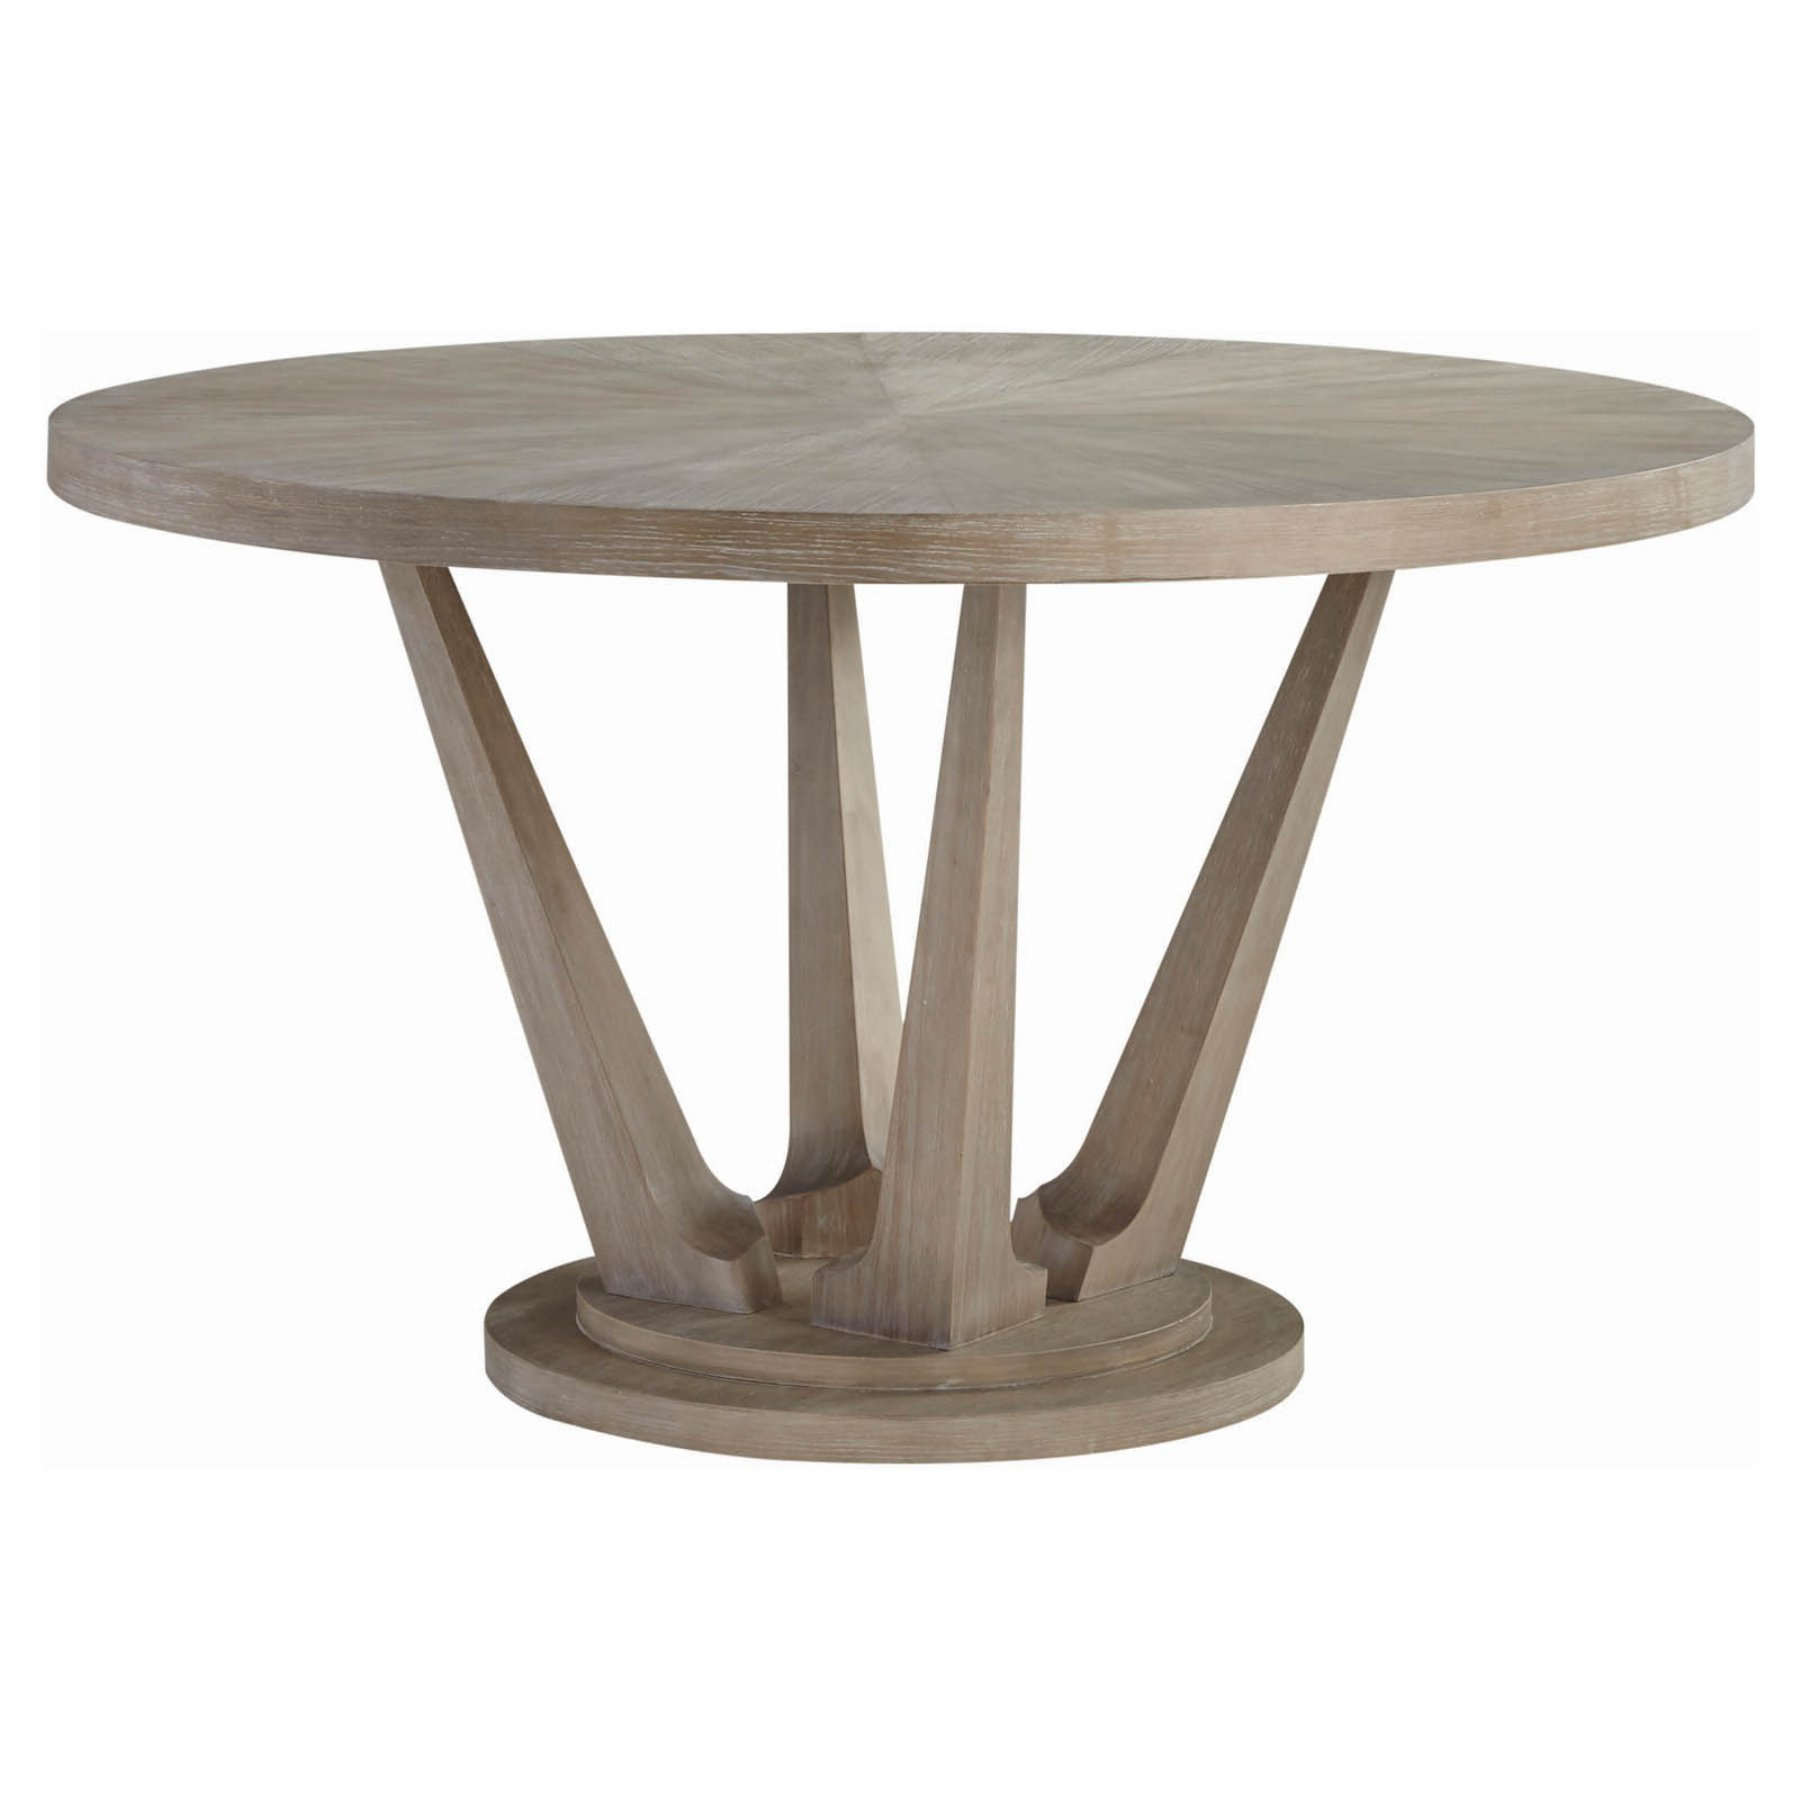 Palliser Alexandra Round Dining Table | Products In 2019 Pertaining To Most Recently Released Gray Wash Livingston Extending Dining Tables (View 7 of 25)